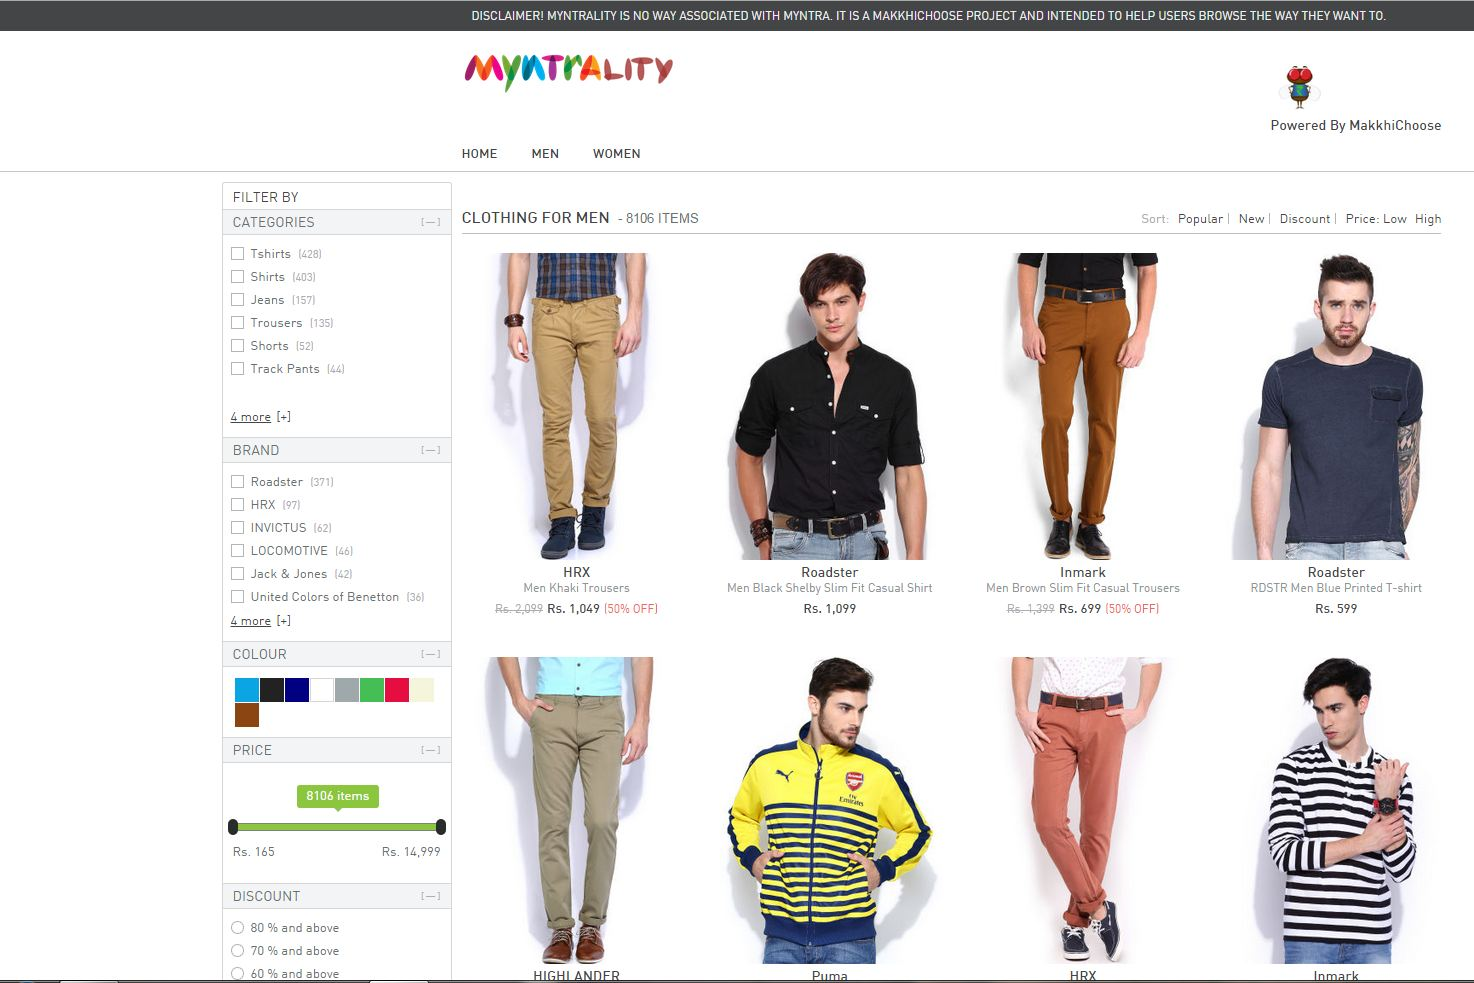 5 best online shopping sites for men junglidonkey for The best online shopping